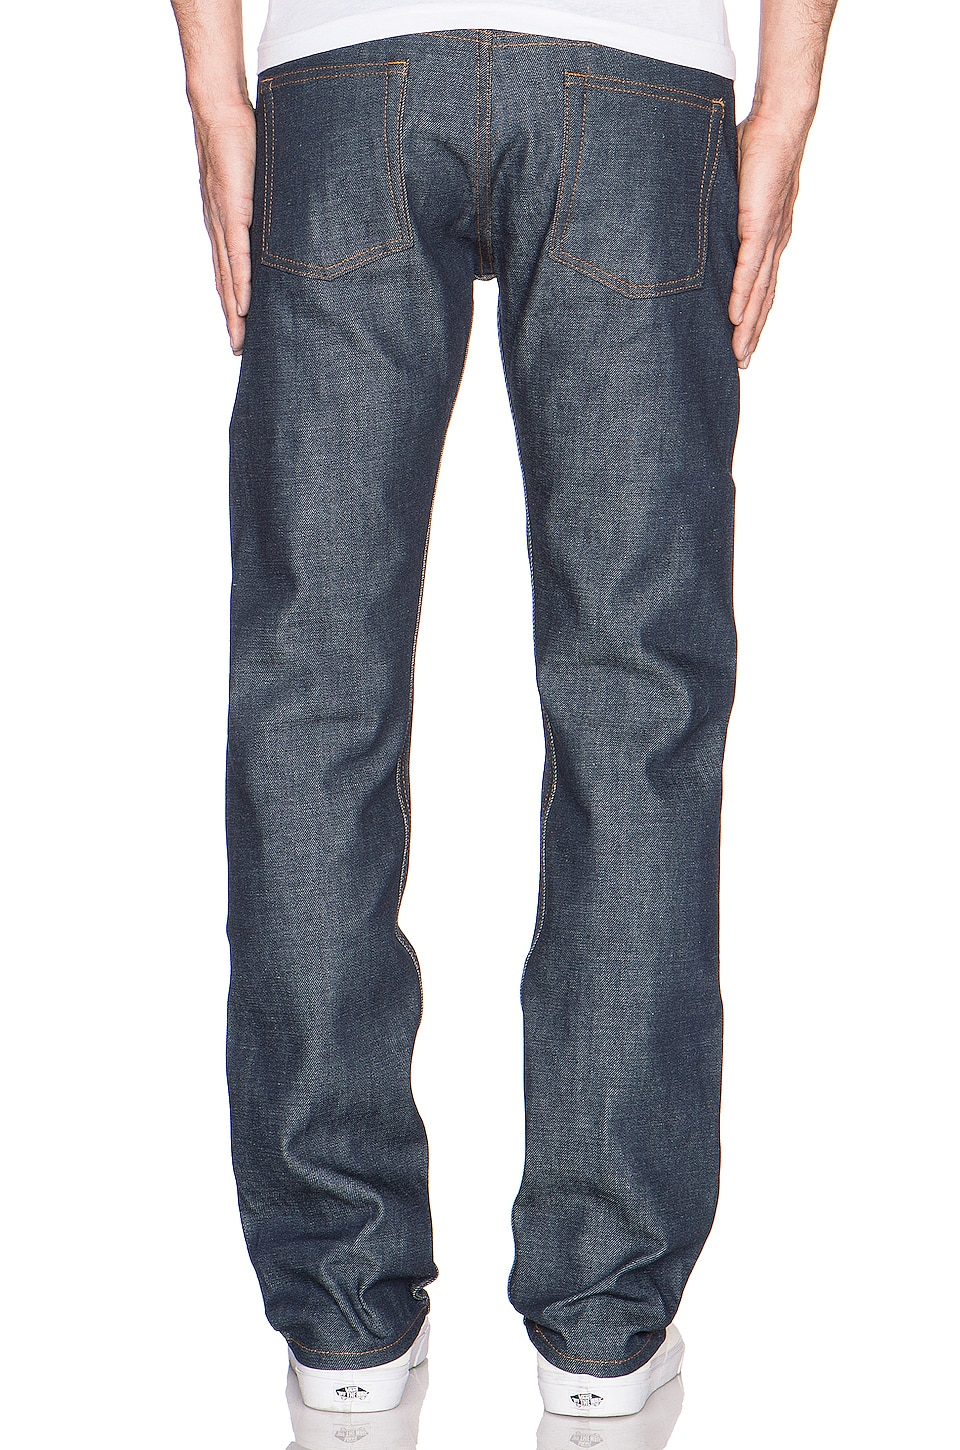 Naked & Famous Denim Weird Guy Dirty Fade Selvedge 14.5oz. in Indigo